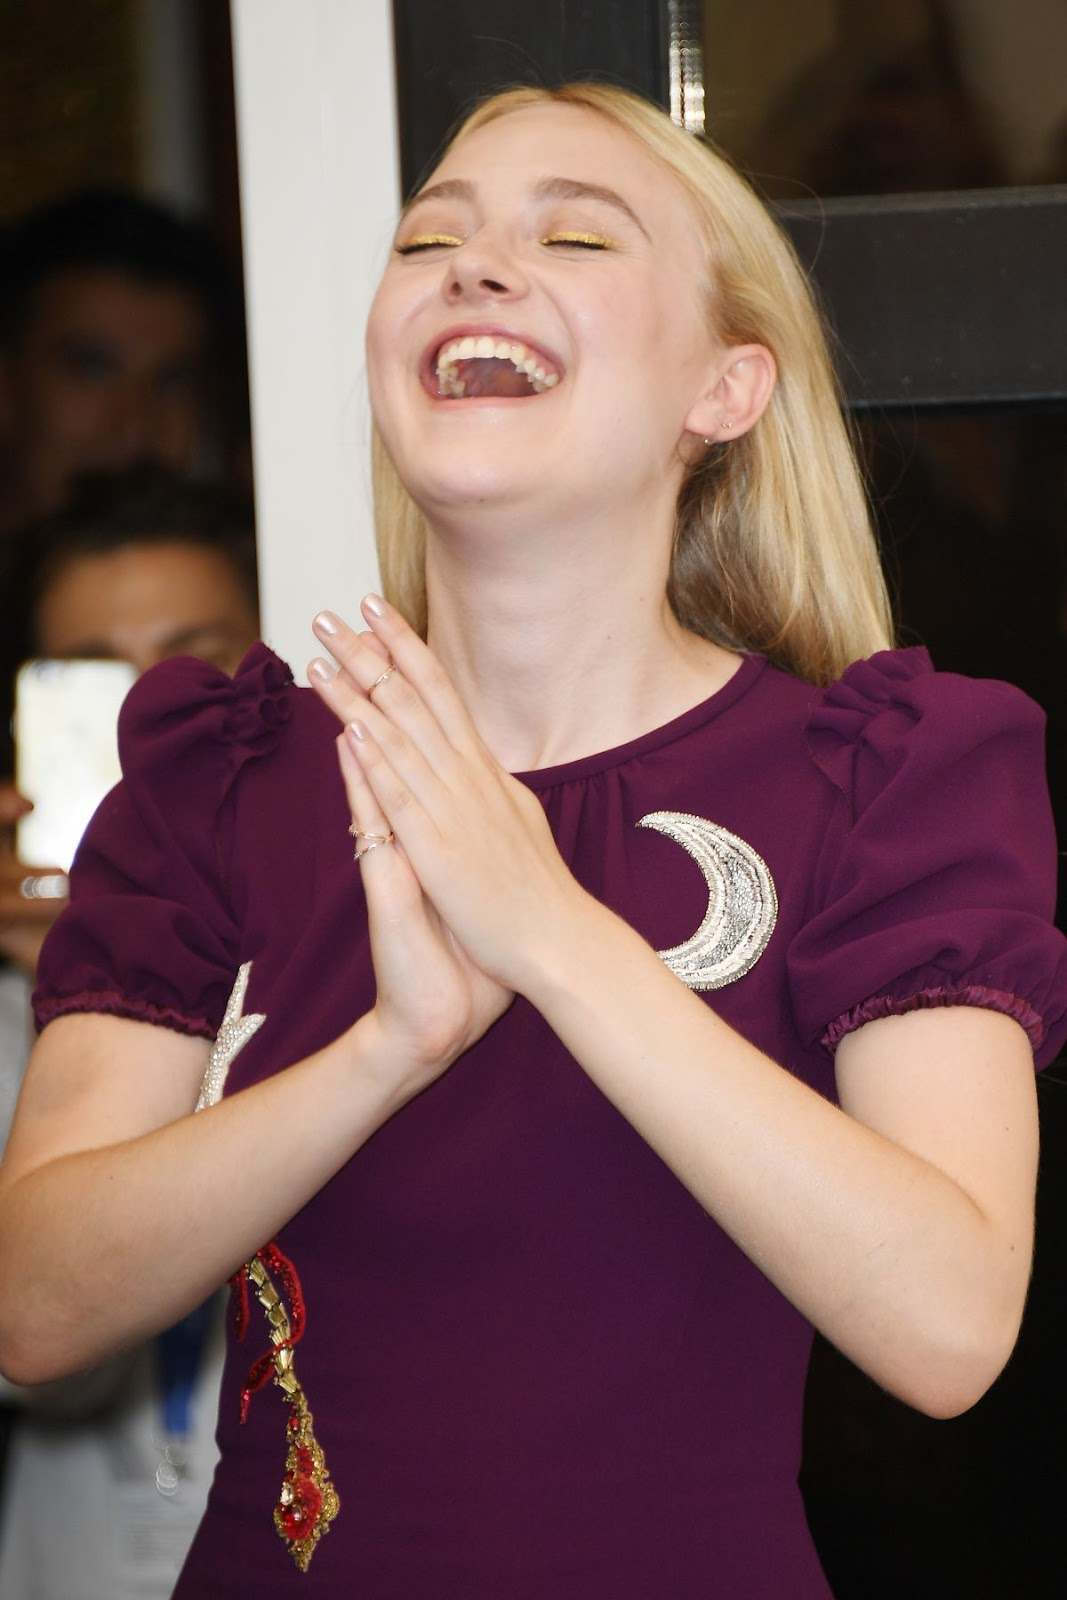 Full HQ Photos of Dakota Fanning At Brimstone Photocall At 73rd Venice Film Festival For Free Download